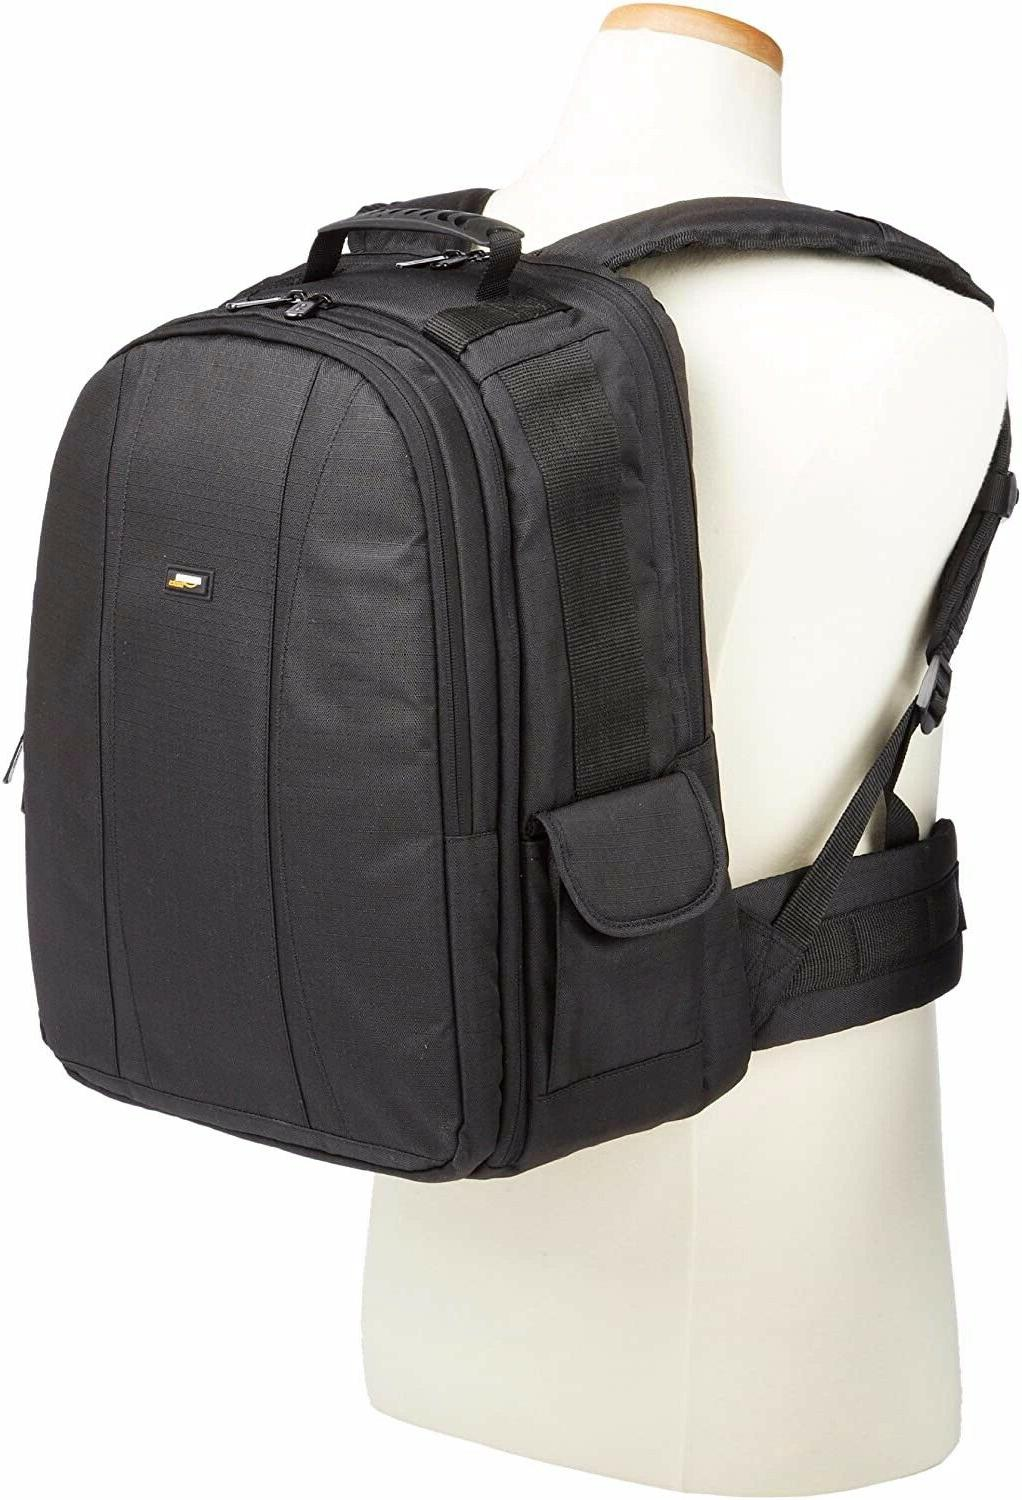 AmazonBasics Backpack Travel Case Black